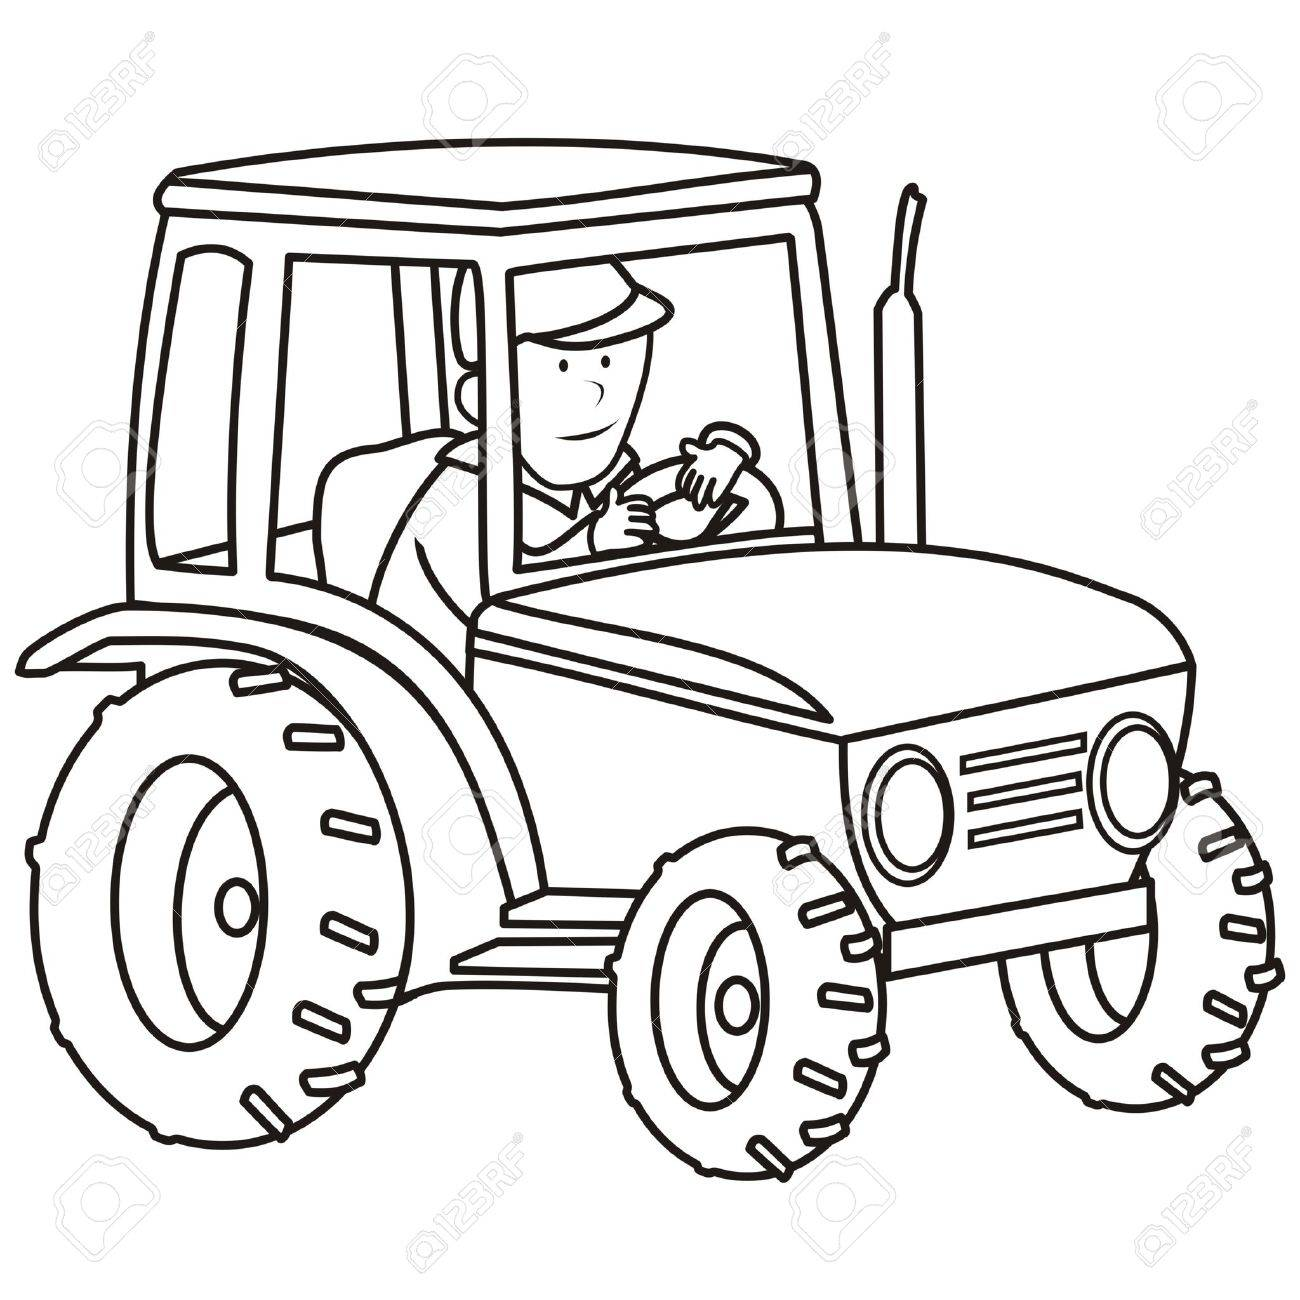 Tractor - Coloring Book Royalty Free Cliparts, Vectors, And Stock ...